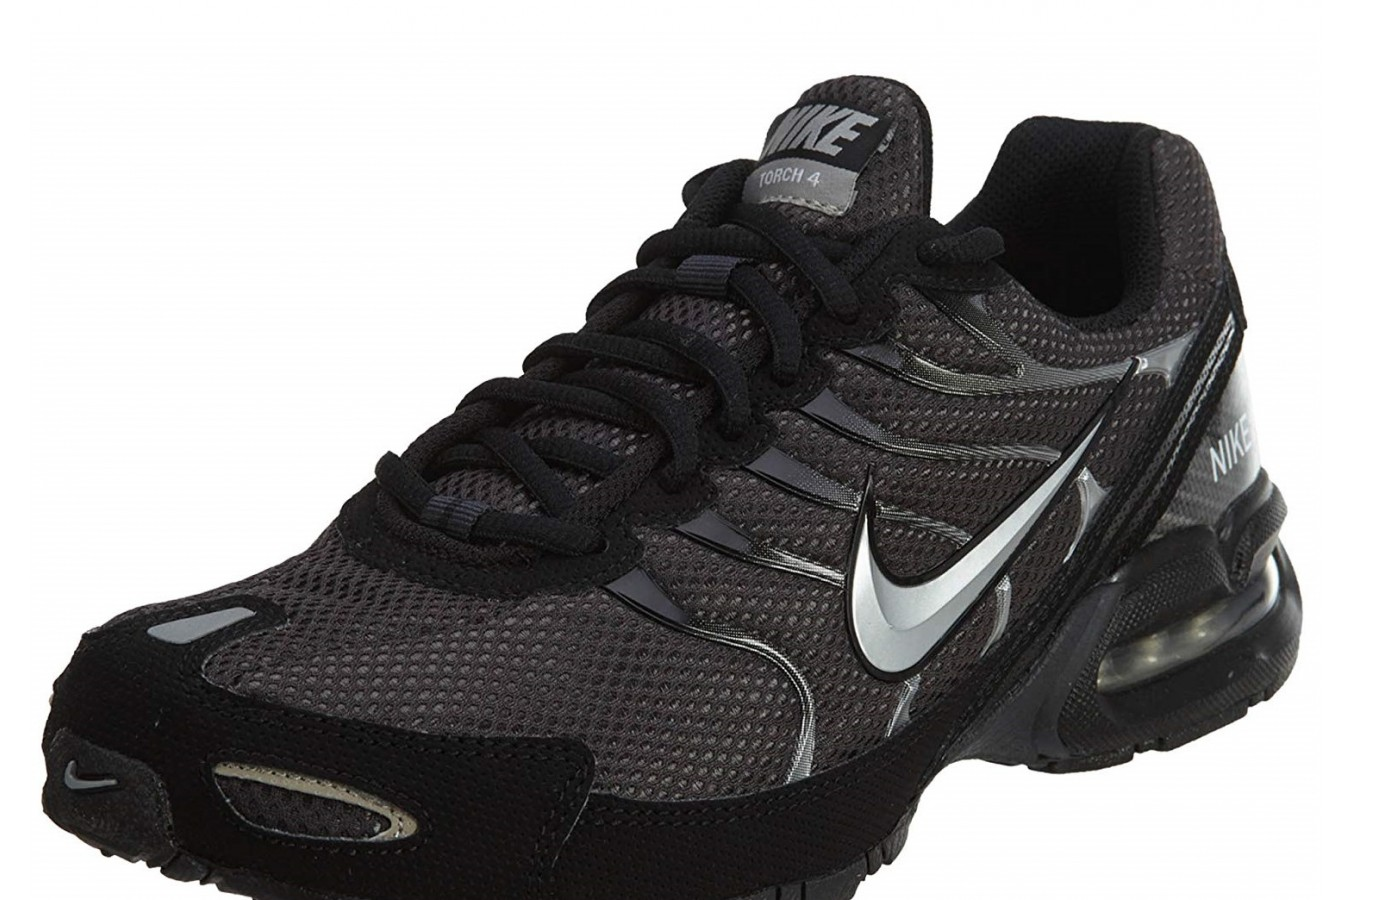 Nike-Air-Max-Torch-4-Primary